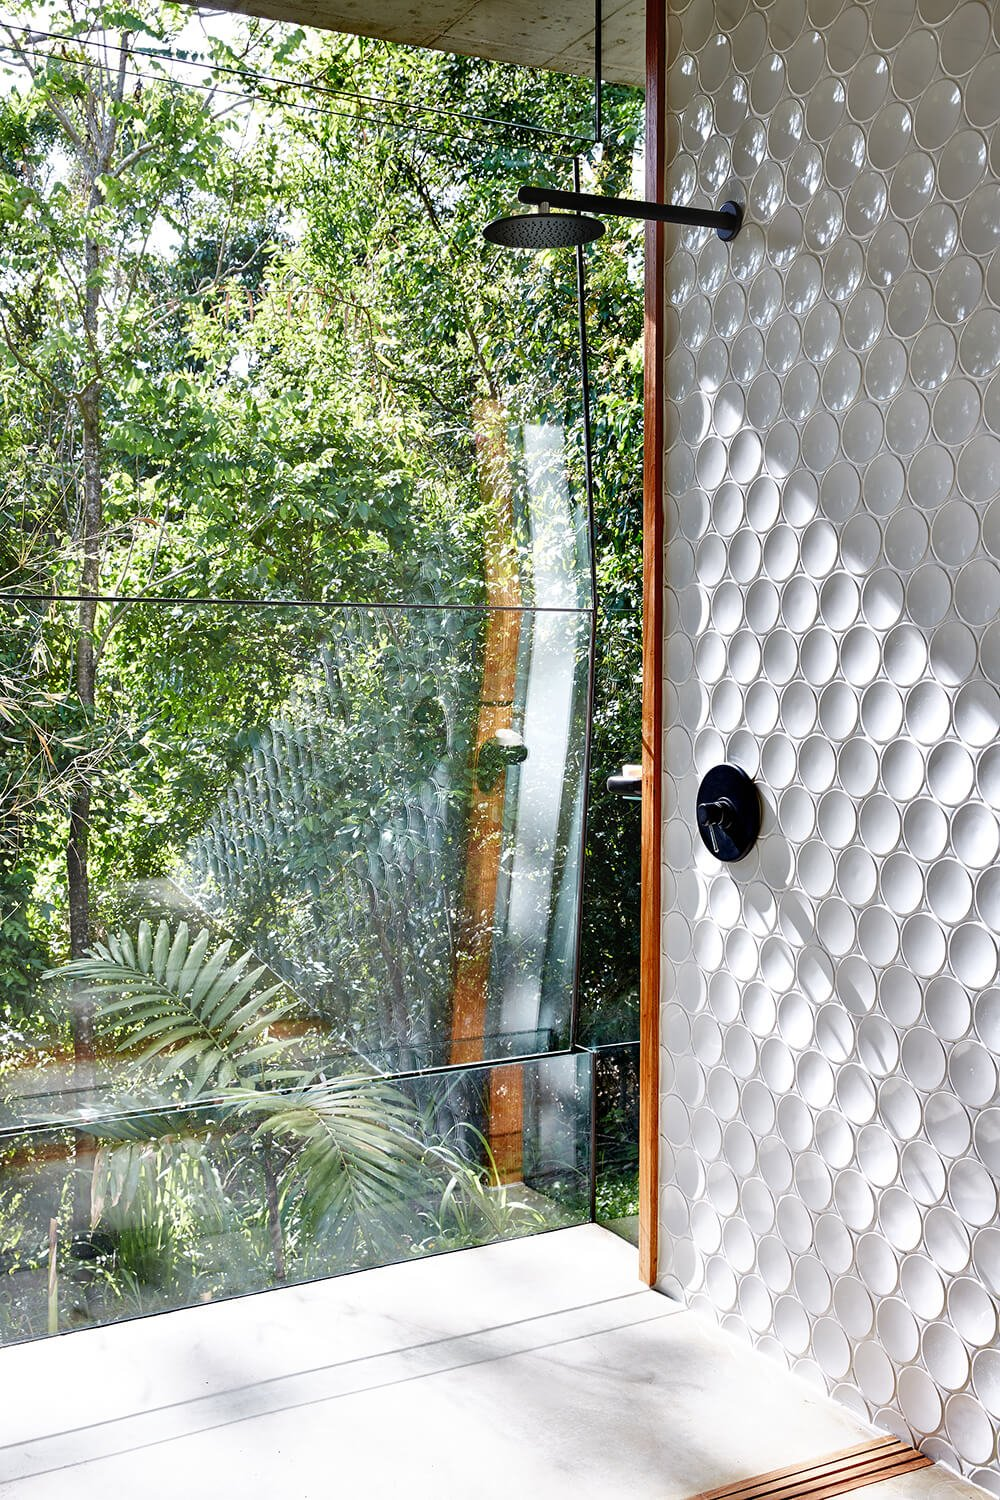 In this second bathroom, we see a similar open design shower next to the windows overlooking the rainforest. The glass panels here are louvered for myriad opening possibilities.